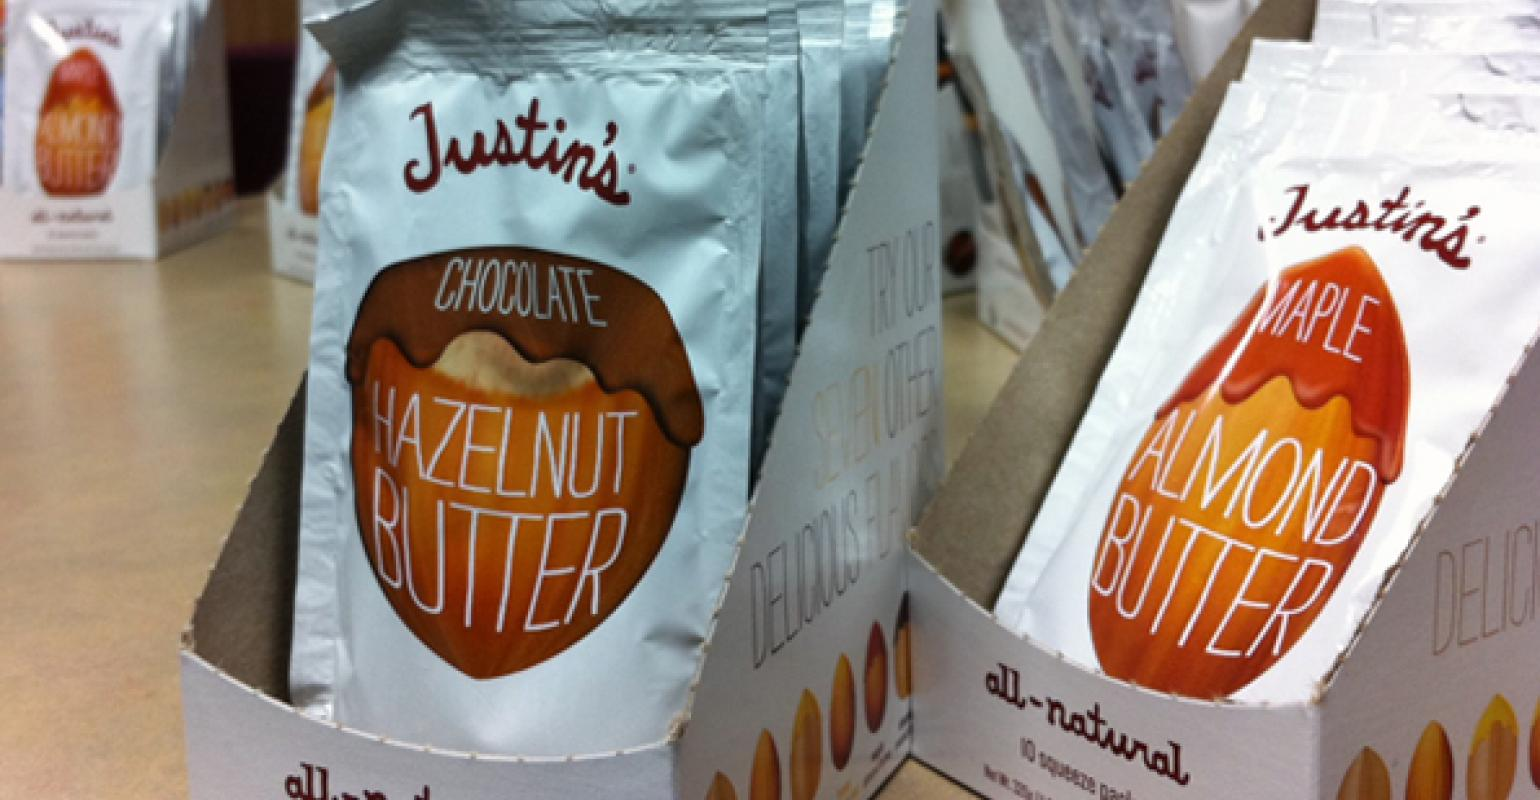 Sustainable packaging is the next hot food industry trend